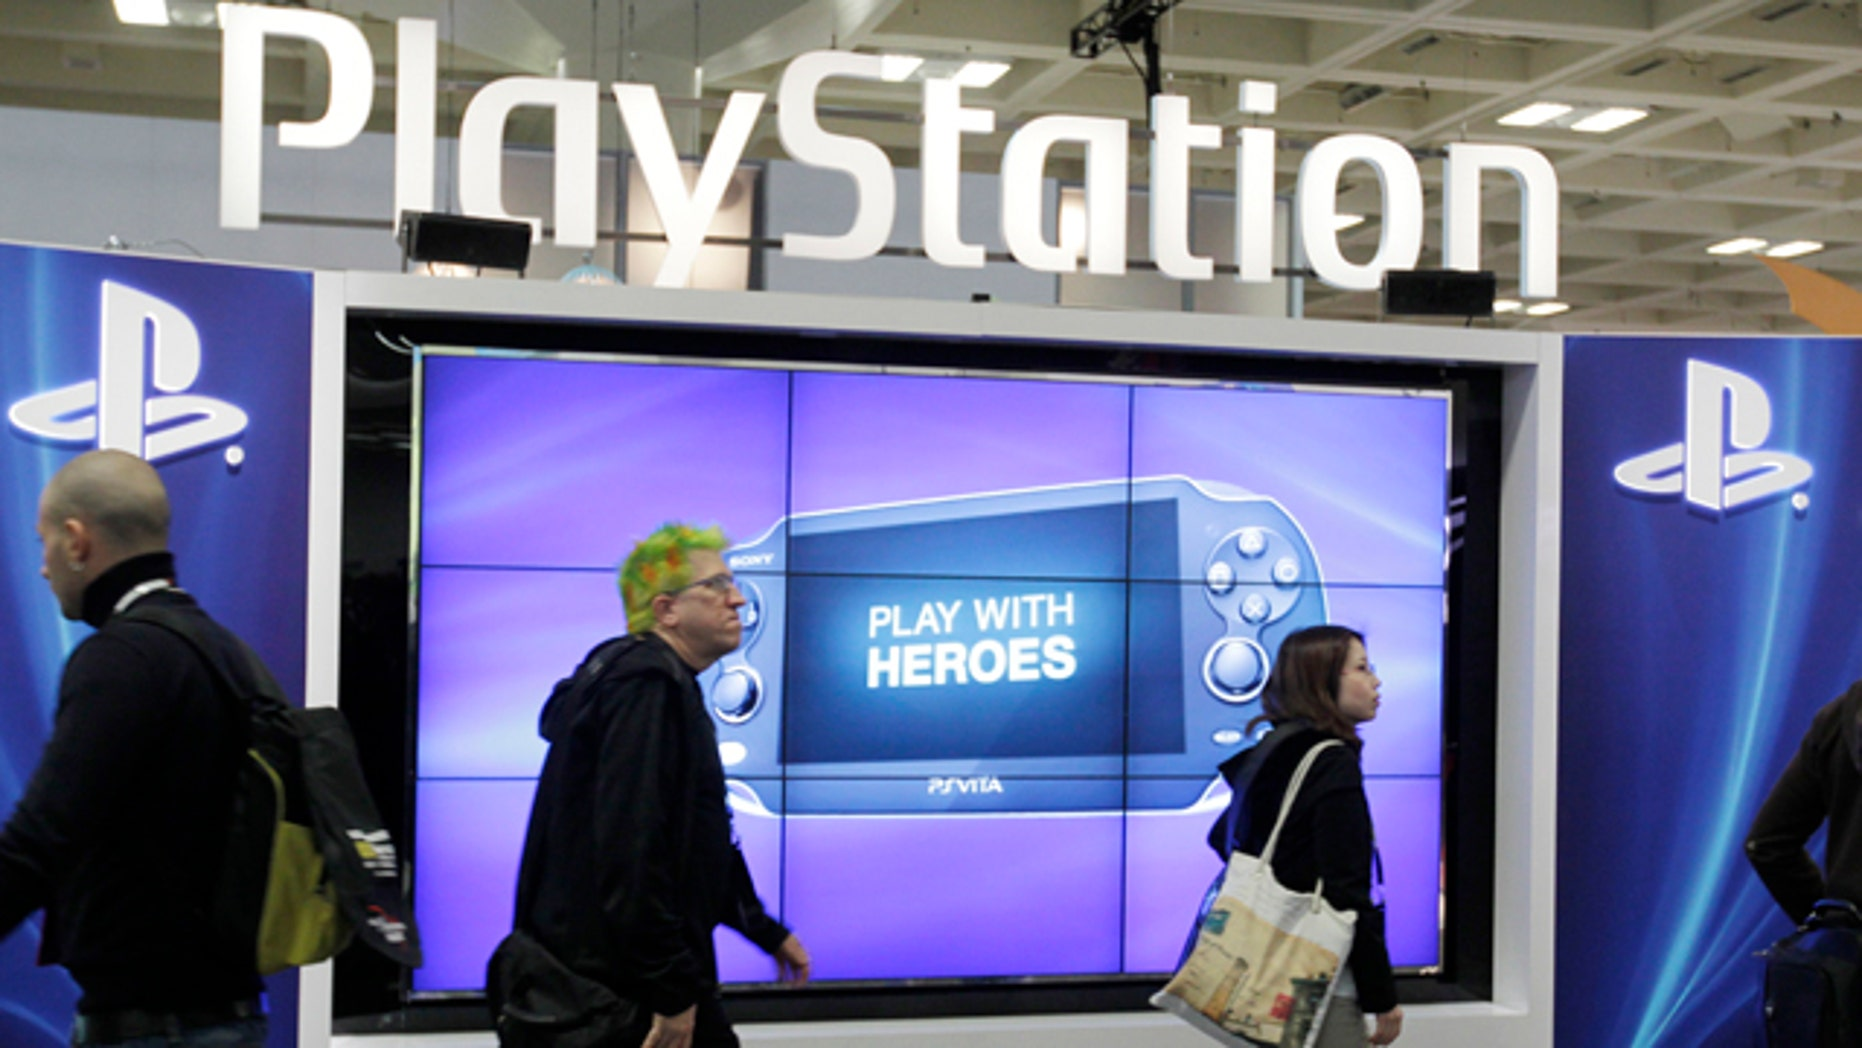 FILE- This March 8, 2012 file photo shows attendees walking past the Sony PlayStation PS Vita console on display in the Sony PlayStation booth at the Game Developers Conference in San Francisco. (AP Photo/Paul Sakuma, File)